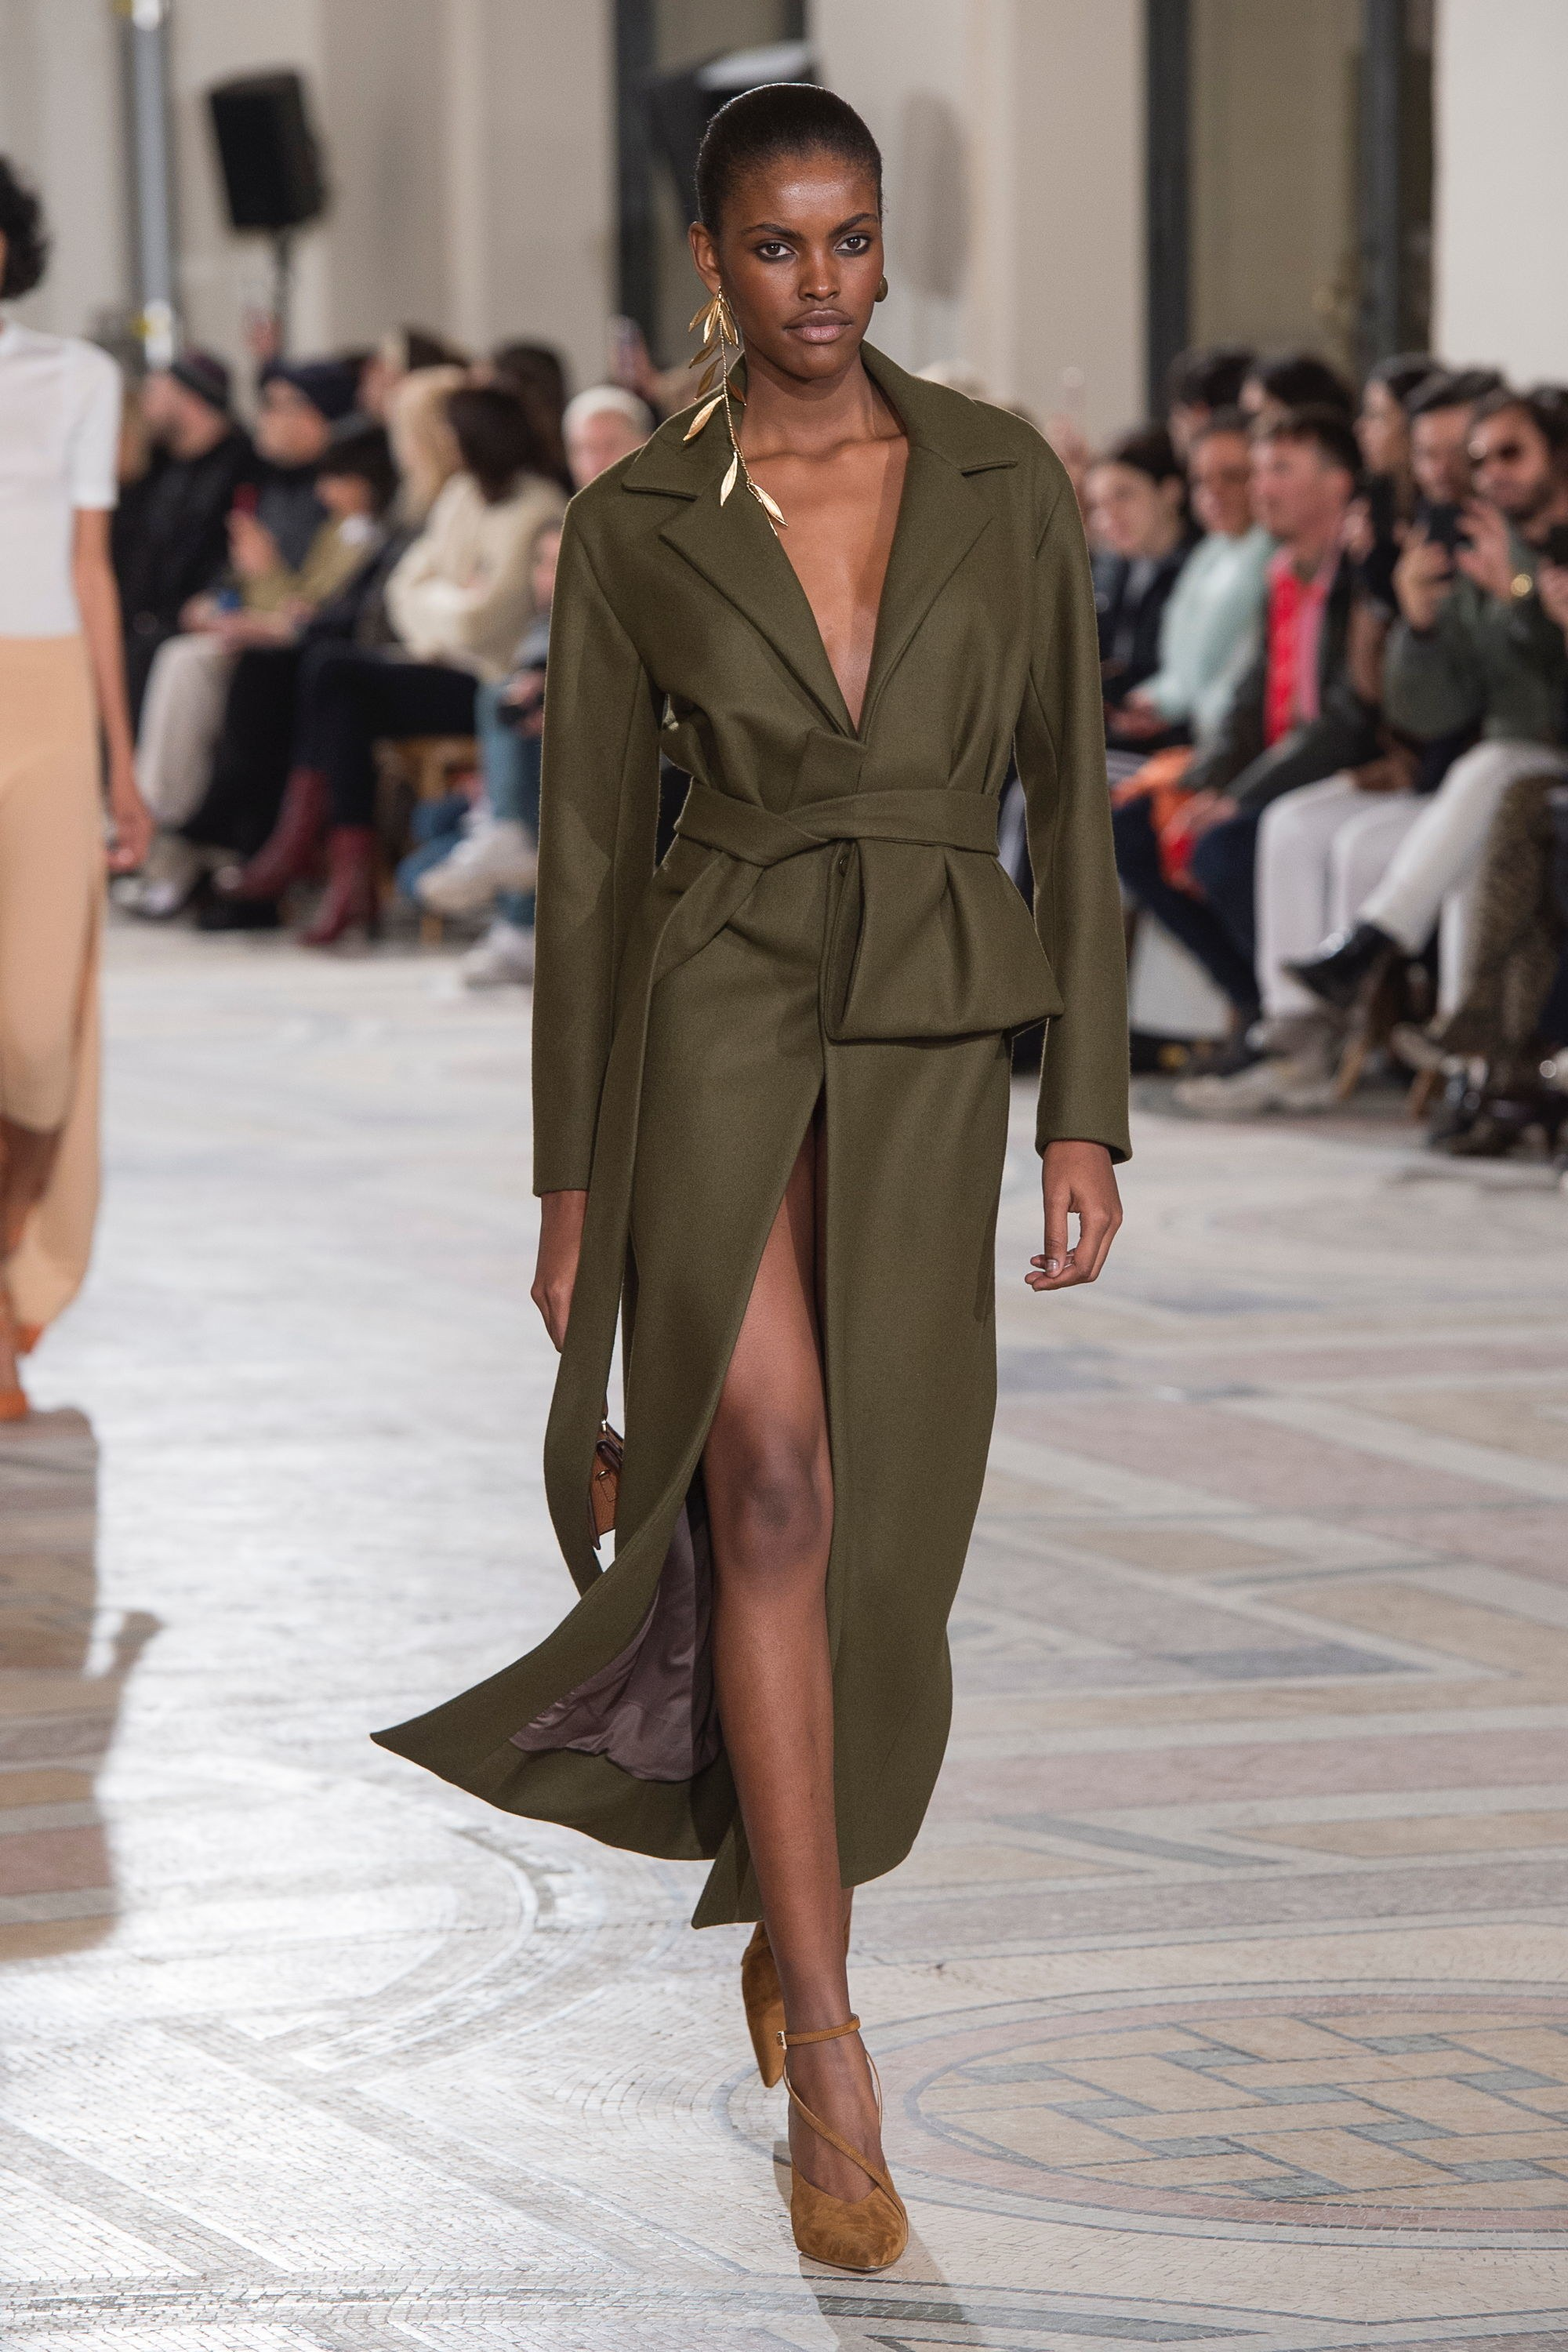 Trini | Jacquemus Fall 2018 RTW Collection